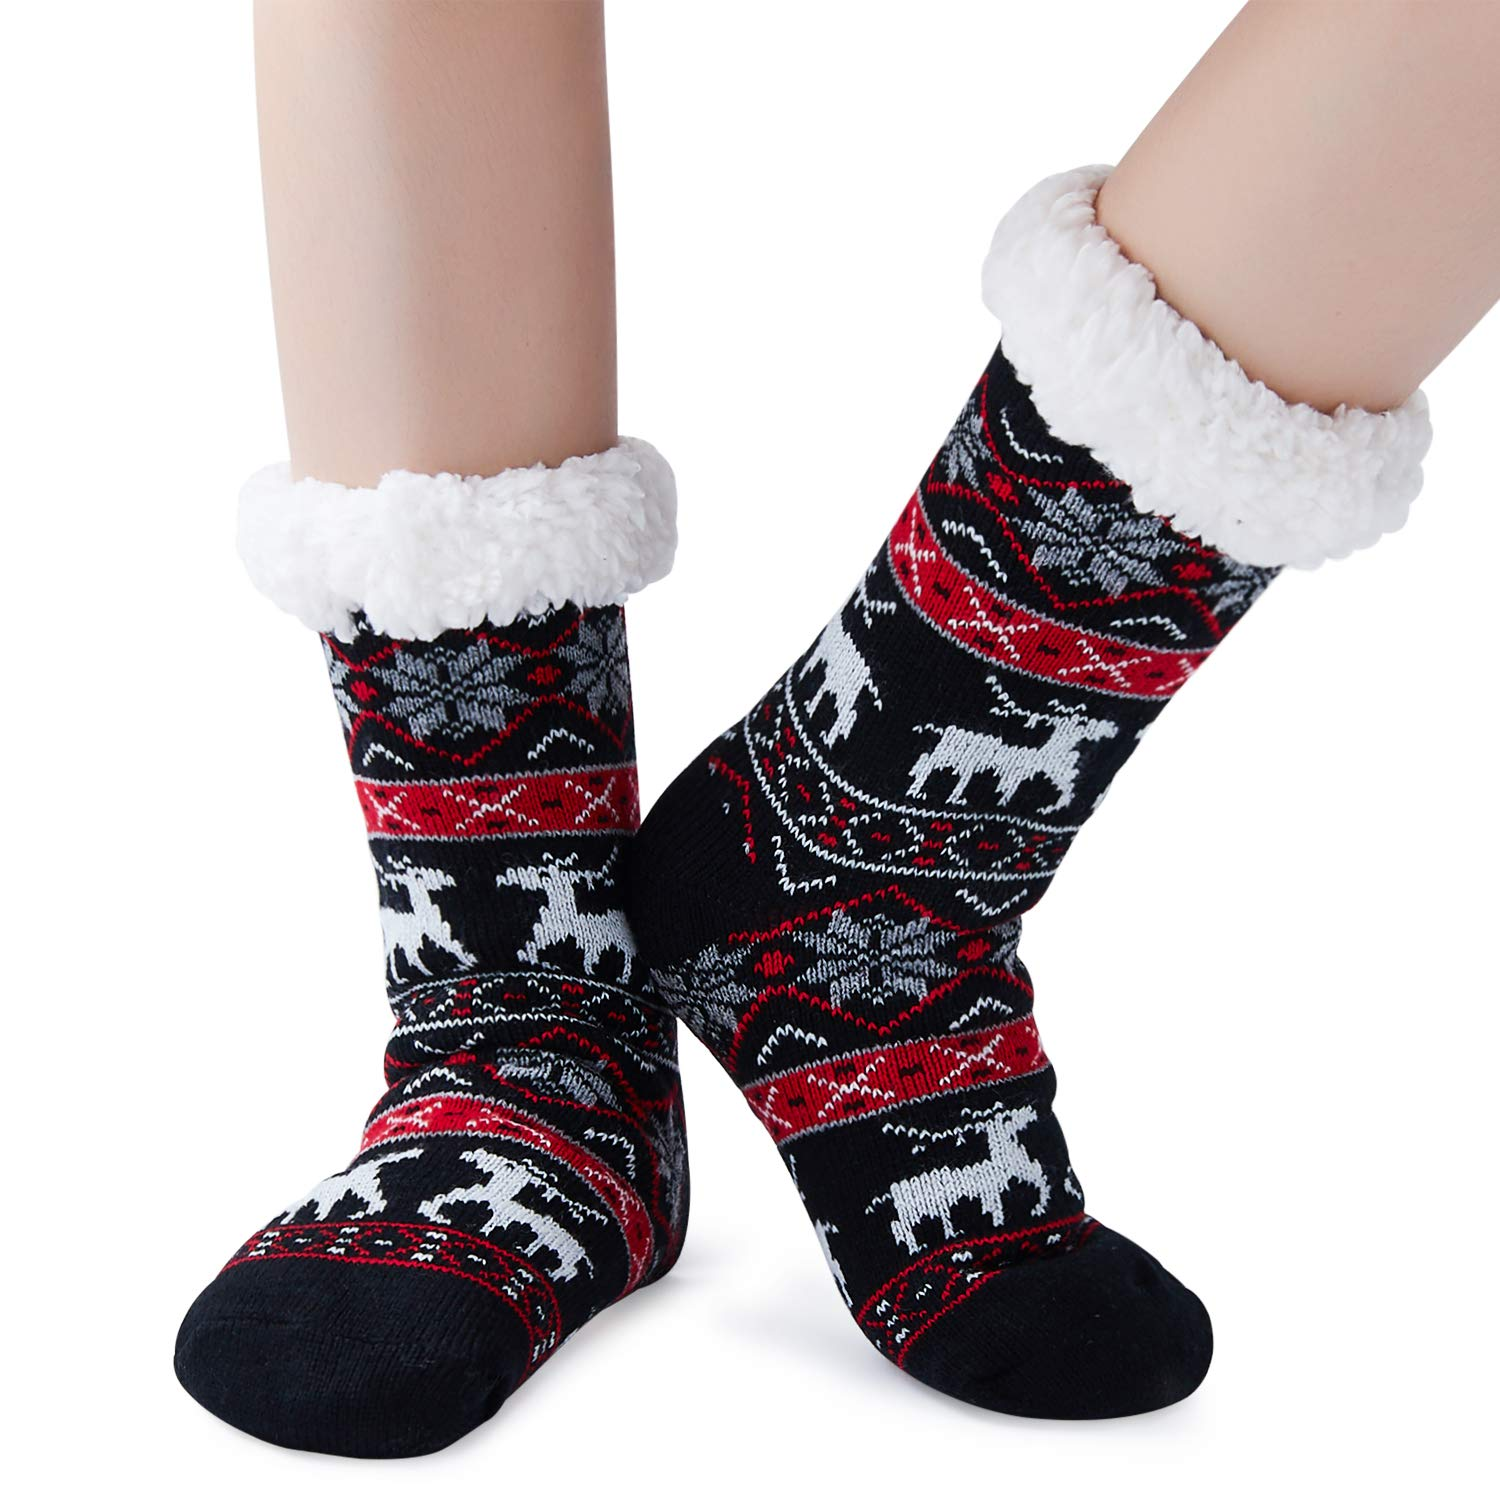 Goodstoworld 3D Socks Unisex Cool Funny Crazy Printed Athletic Crew Tube Socks, Christmas-10, One Size